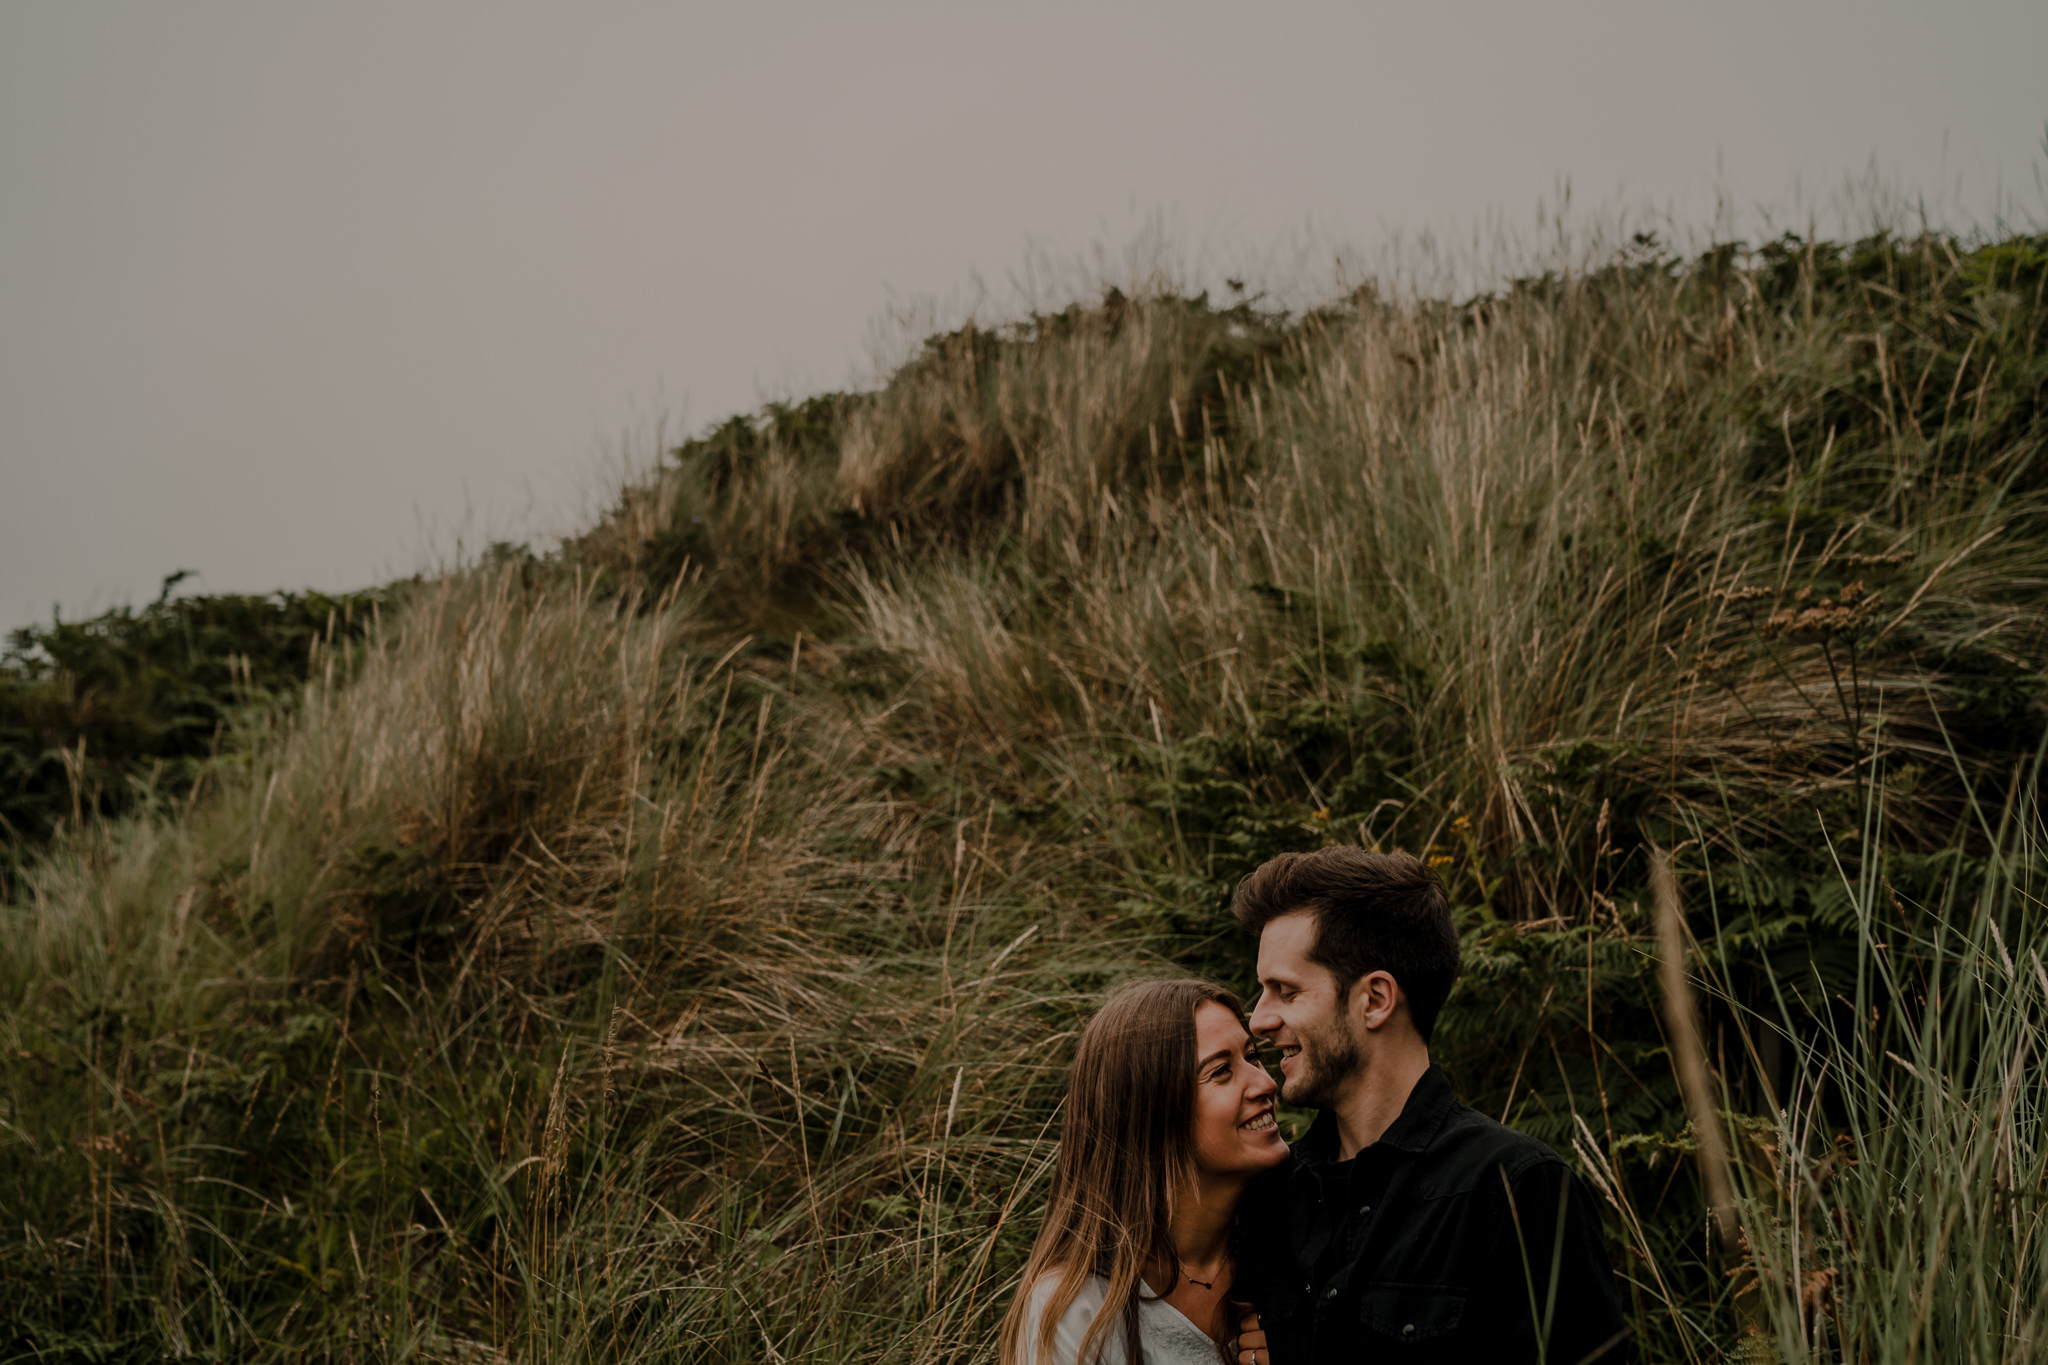 whiterocks-beach-adventure-elopement-fun-wedding-photographers-northern-ireland-the-martins-61.jpg